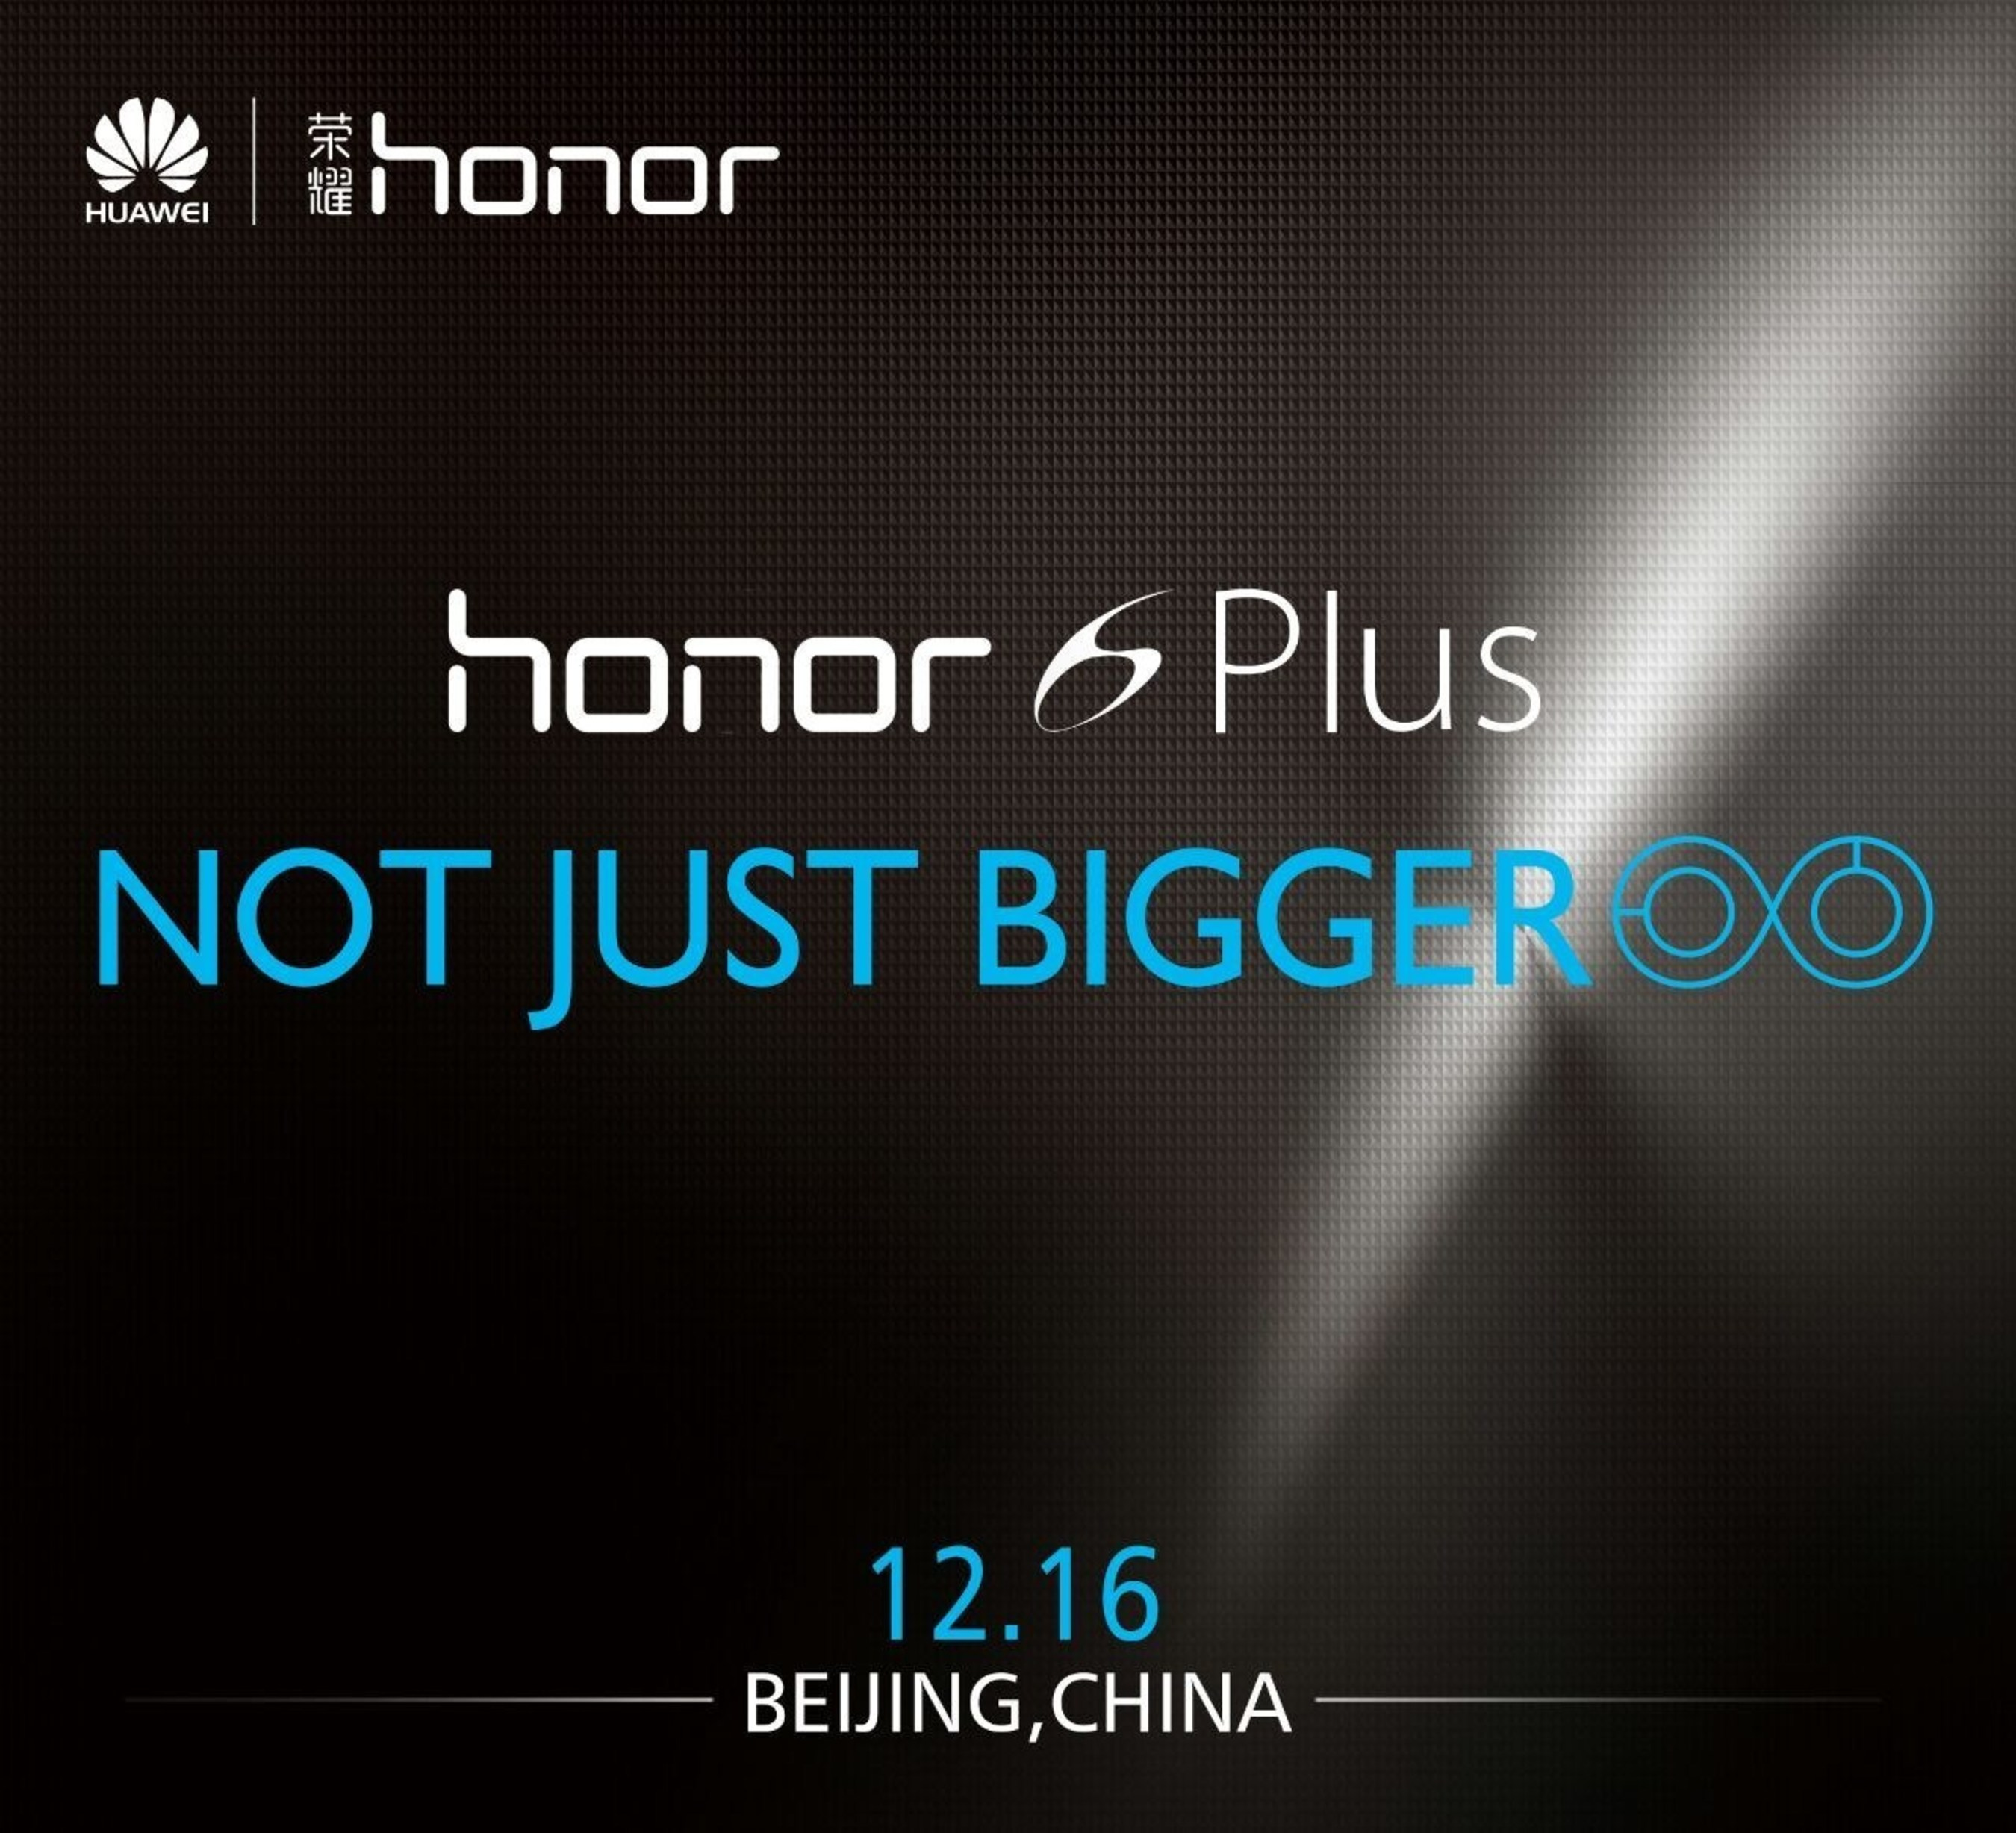 The slogan of Honor 6 Plus